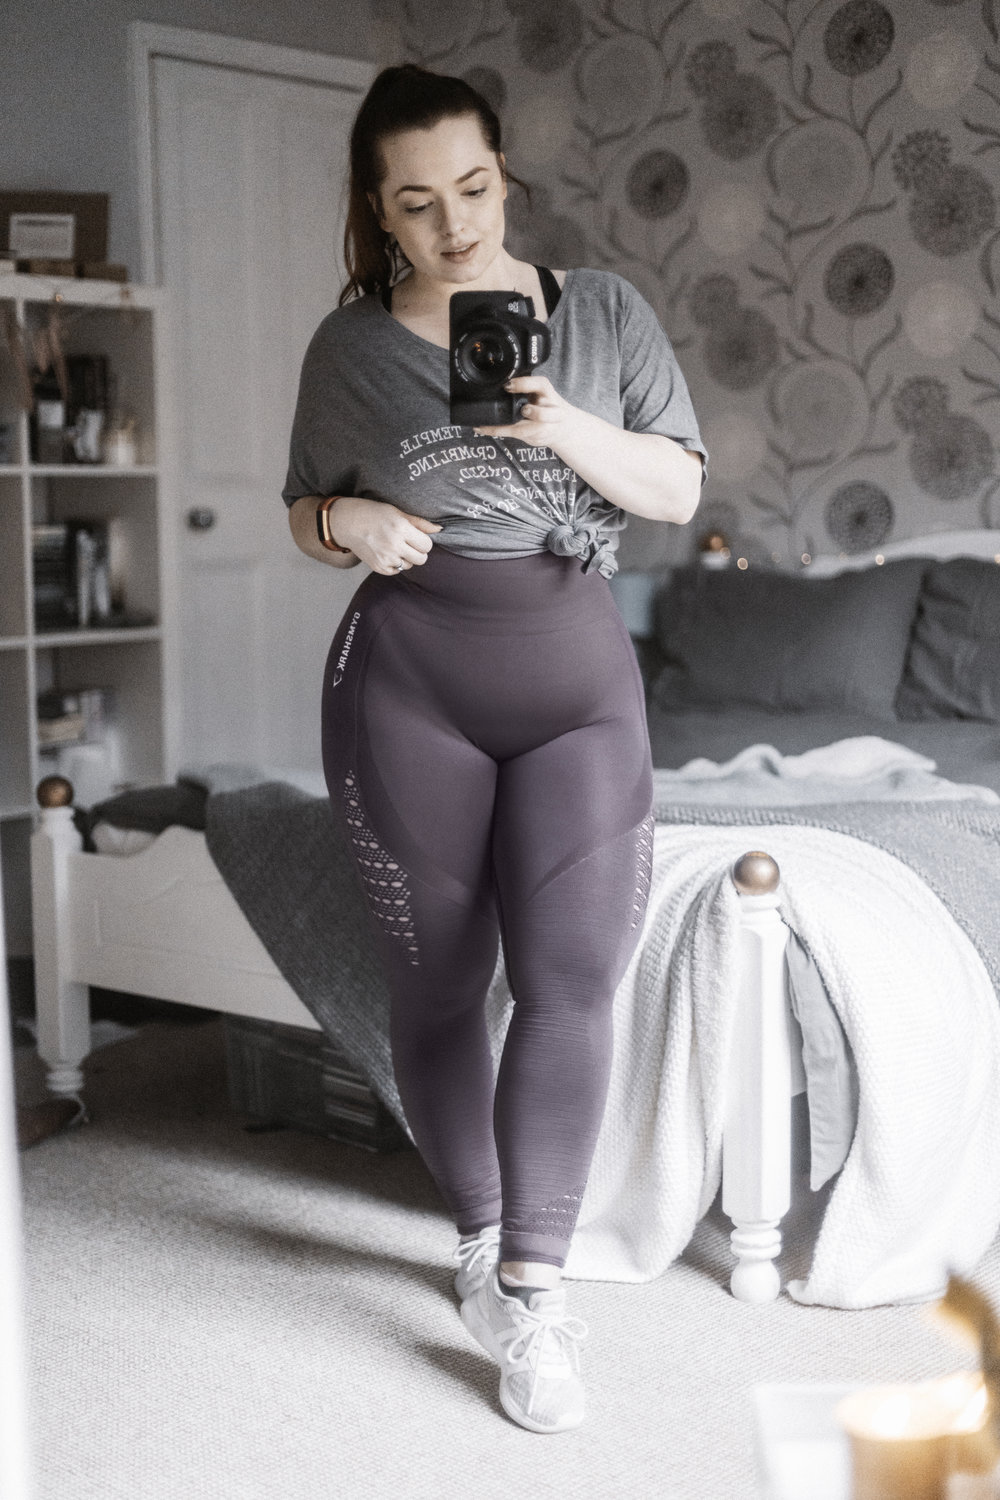 SEAMLESS ENERGY HIGH WAISTED LEGGINGS - COLOUR : Purple WashRATING : ★★★✩✩FROM : GymSharkPRICING : £42I want to be honest in my reviews and I feel as someone who doesn't necessarily have a fitness model/athletic body I can be someone relatable to everyday girls and women who follow suit with a similar figure. So today I'm reviewing the GymShark Seamless High Energy Leggings.Taking them out the bag and instantly loved the material, the colour was beautiful so I had high hopes. So as recommended I sized up as prior to release we were told these have a heavy compression. So that's what I did I sized up, it still felt like a workout trying to get them on and the first thing I noticed when they were on... my underwear, it was pretty much blaring out at me (could just wear nude). Putting that aside the feel of them on felt nice, I was definitely compressed in but again another thing blaring at me was my crotch, the cut did not suit or make that area forgiving whatsoever, I felt like you could see way too much that what was needed—however no camel toe.